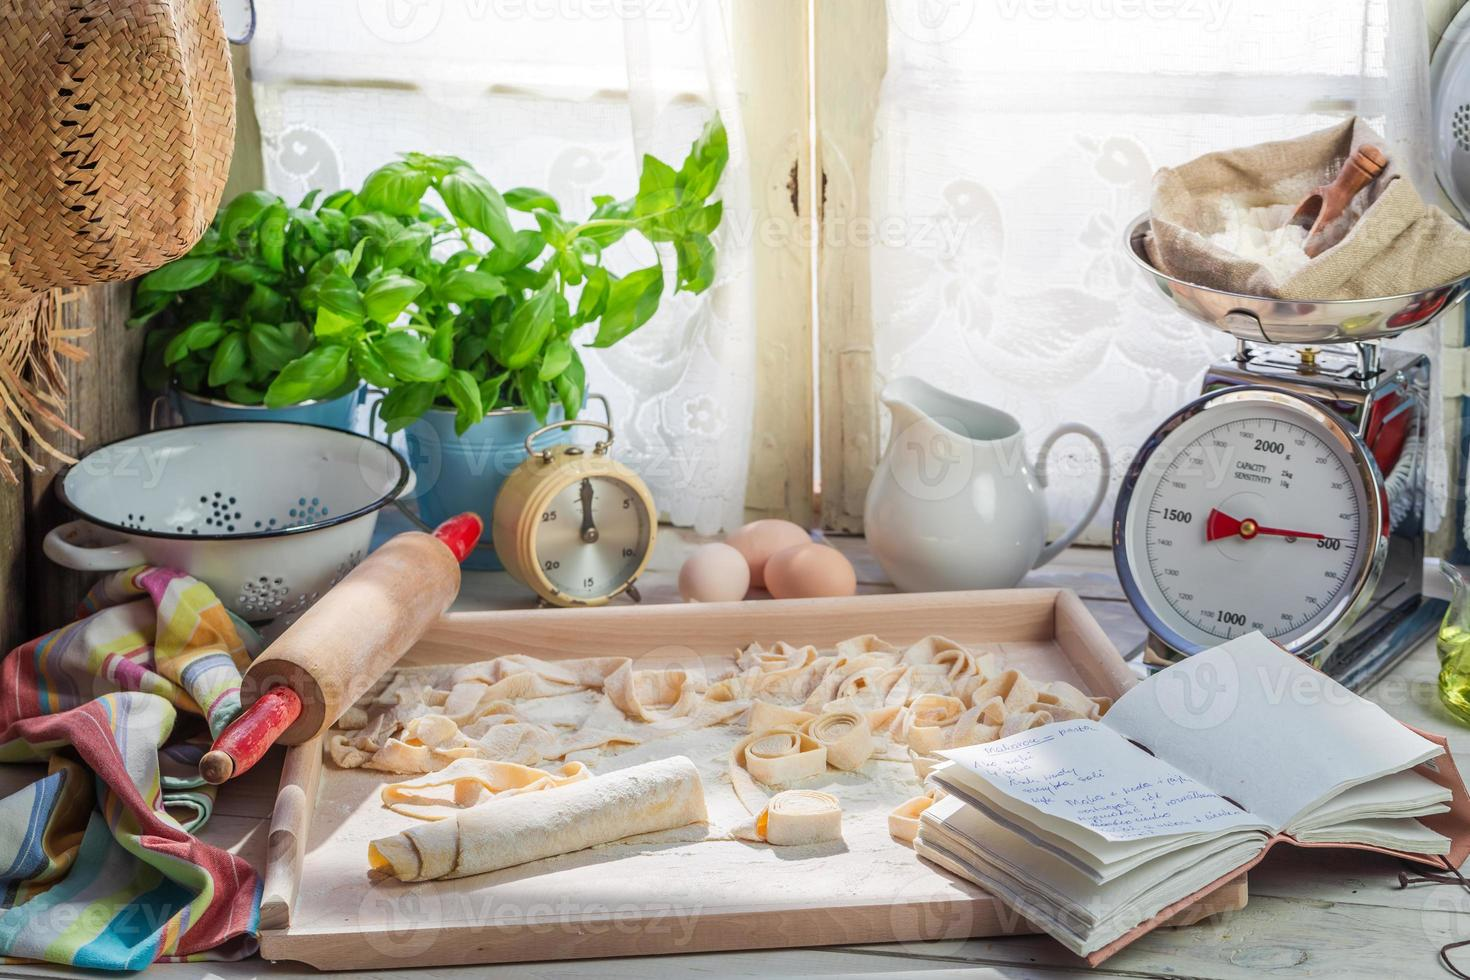 Preparations for tagliatelle made of fresh ingredients photo